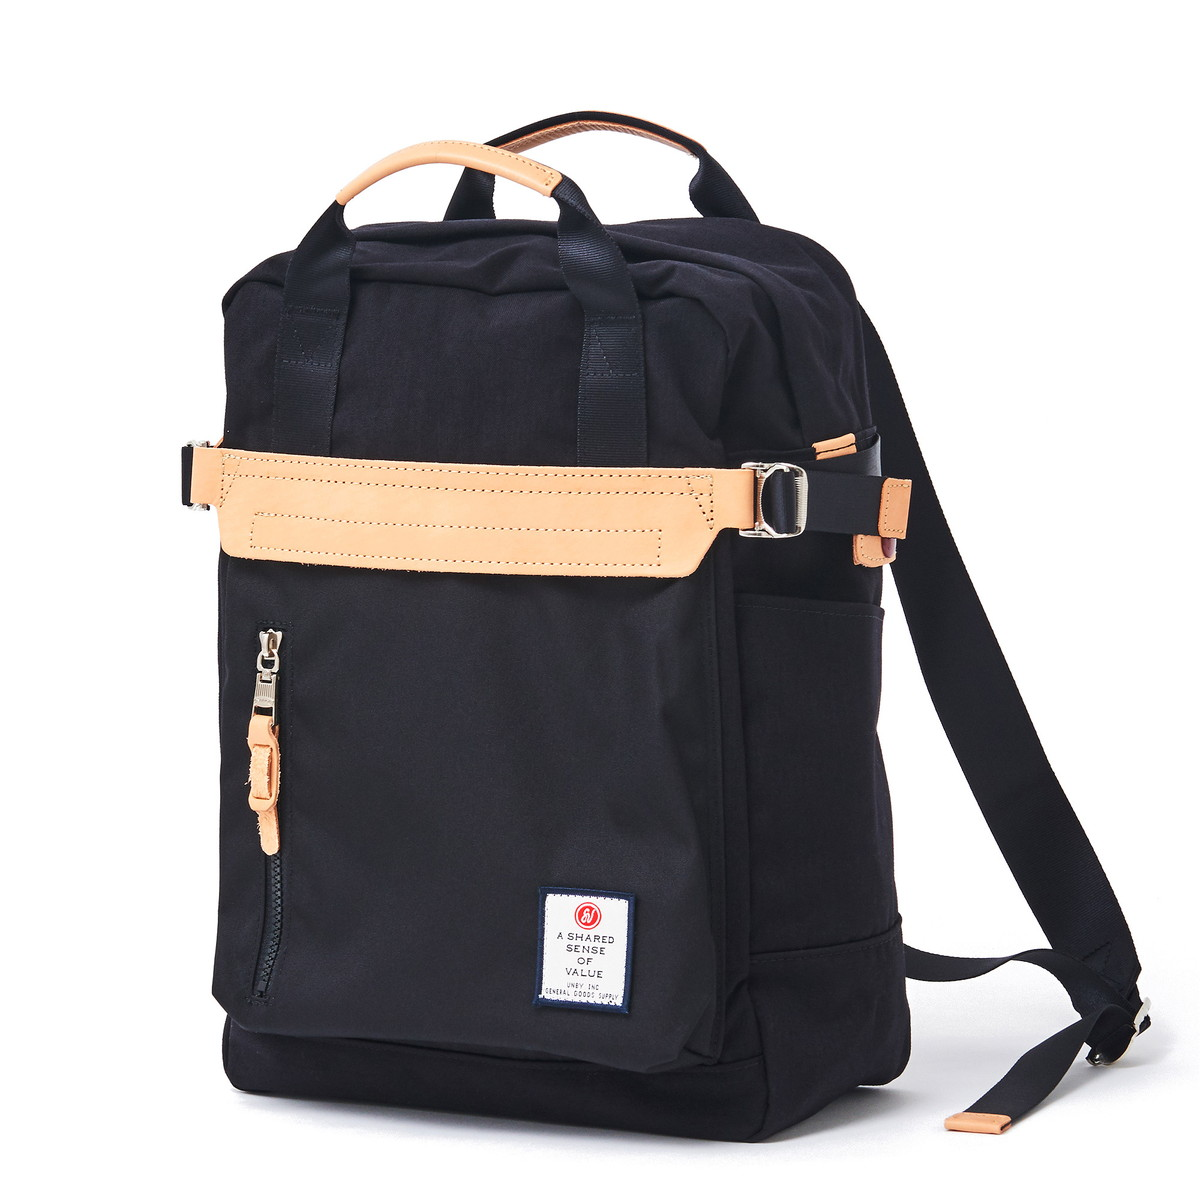 AS2OV (アッソブ) HI DENSITY CORDURA NYLON BOX BACK PACK / バックパック 091406